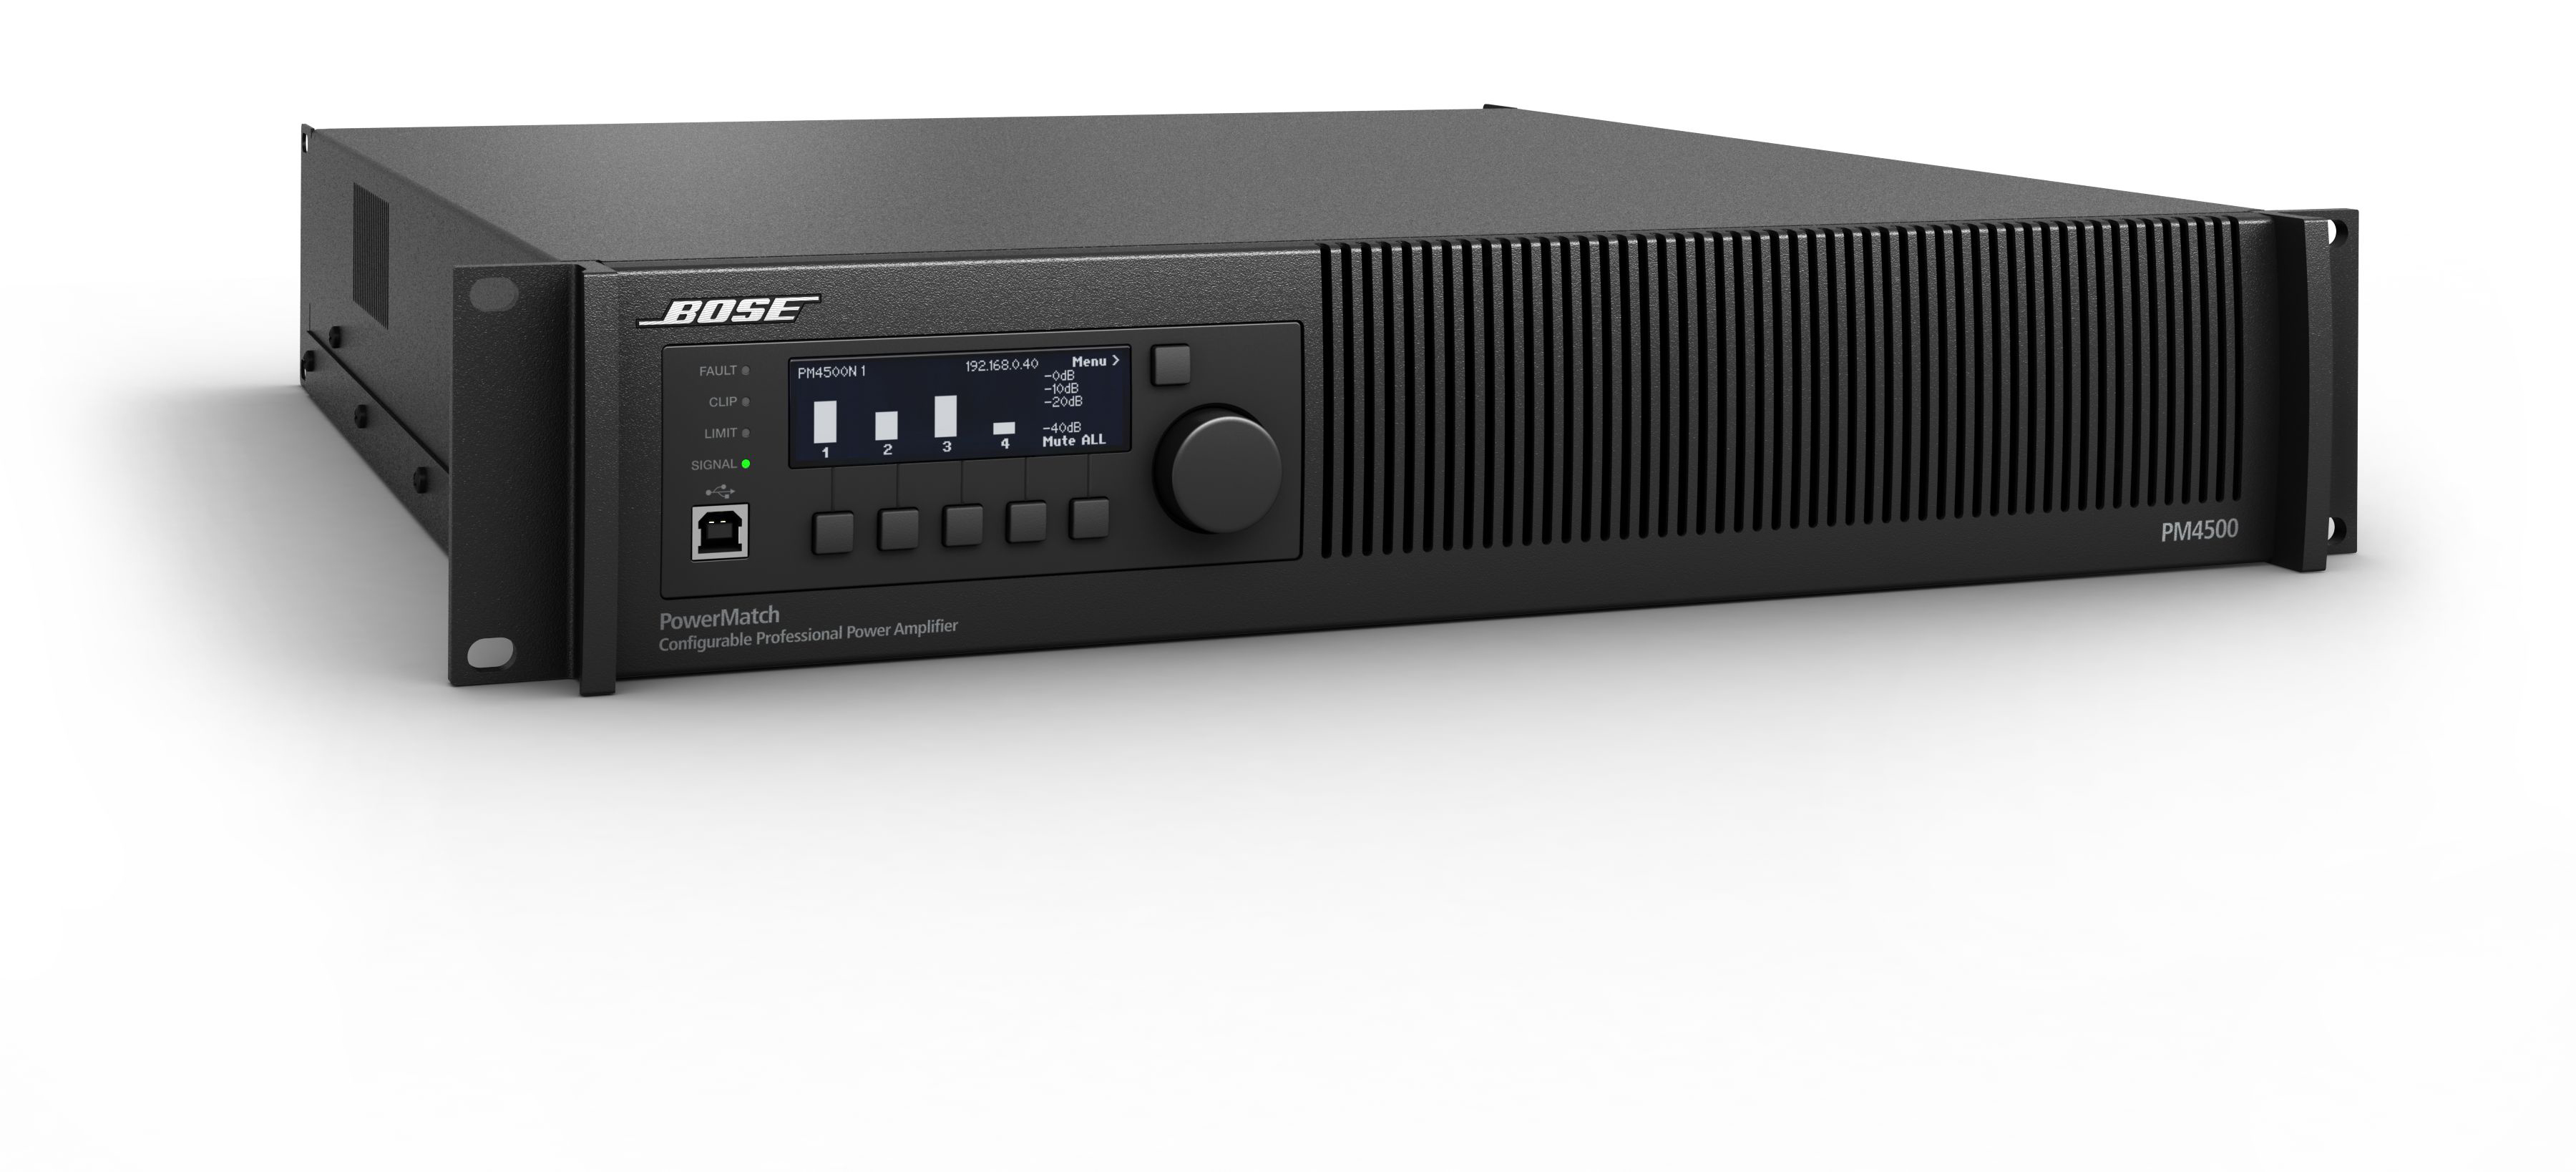 Présentation de l'amplificateur Bose PowerMatch PM4500 ControlSound Division professionnelle